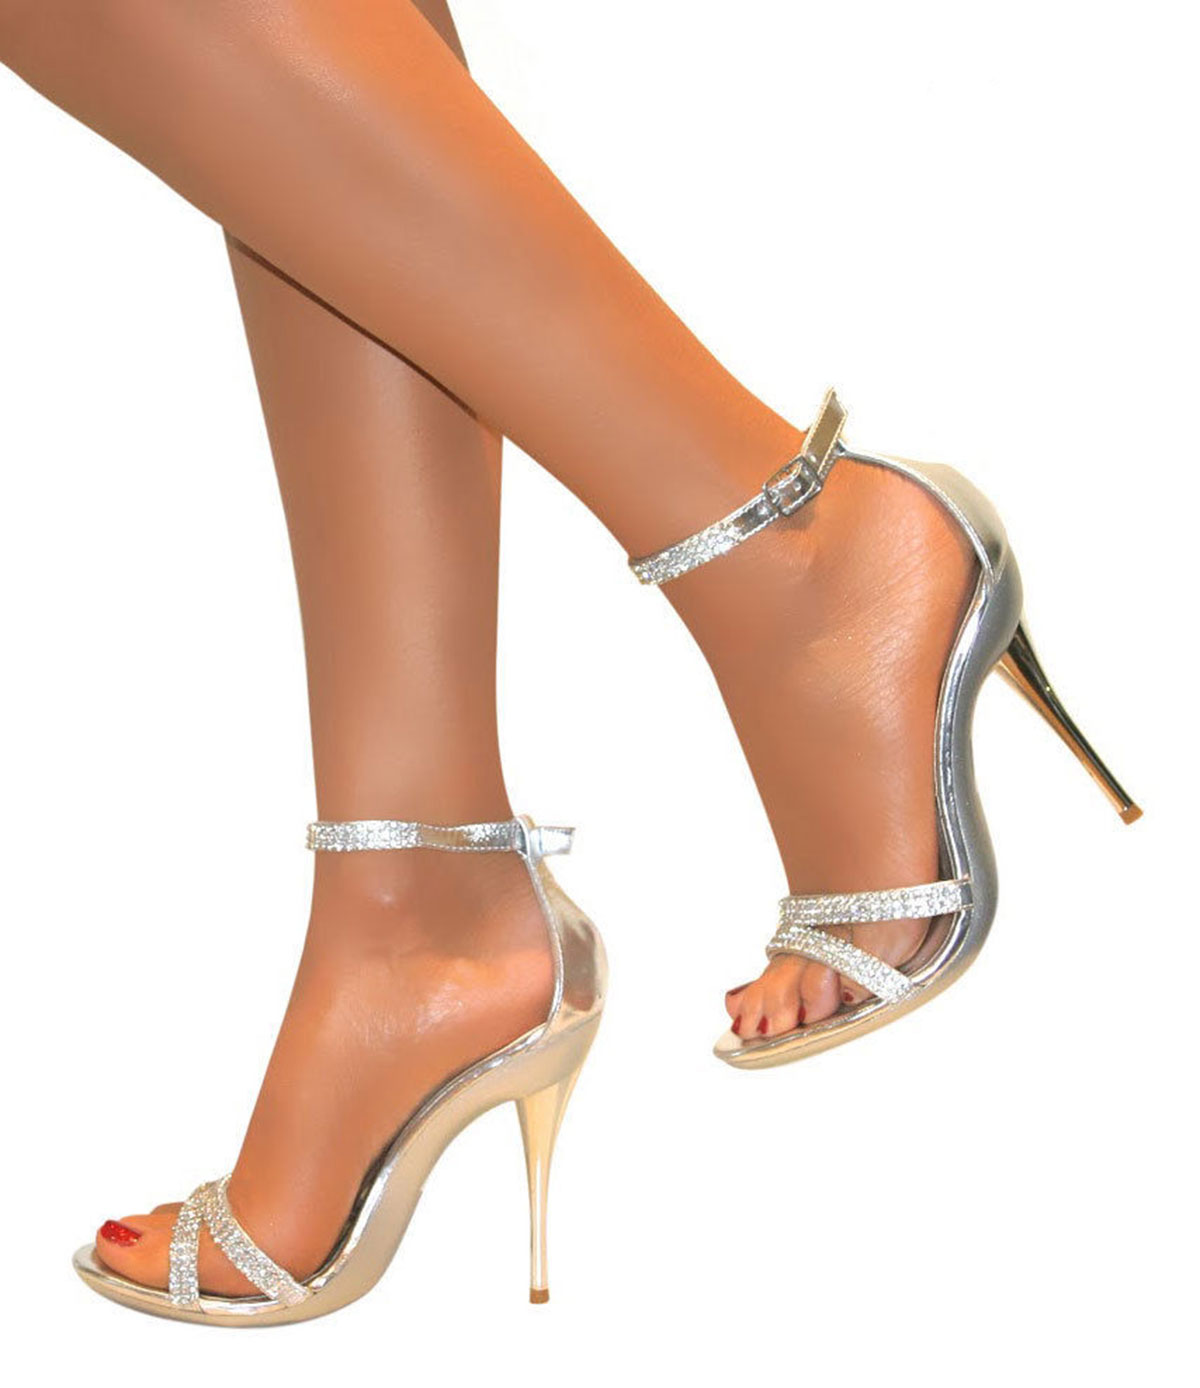 LADIES DIAMANTE SILVER STRAPPY ANKLE SANDALS SHOES HEELS WEDDING ...